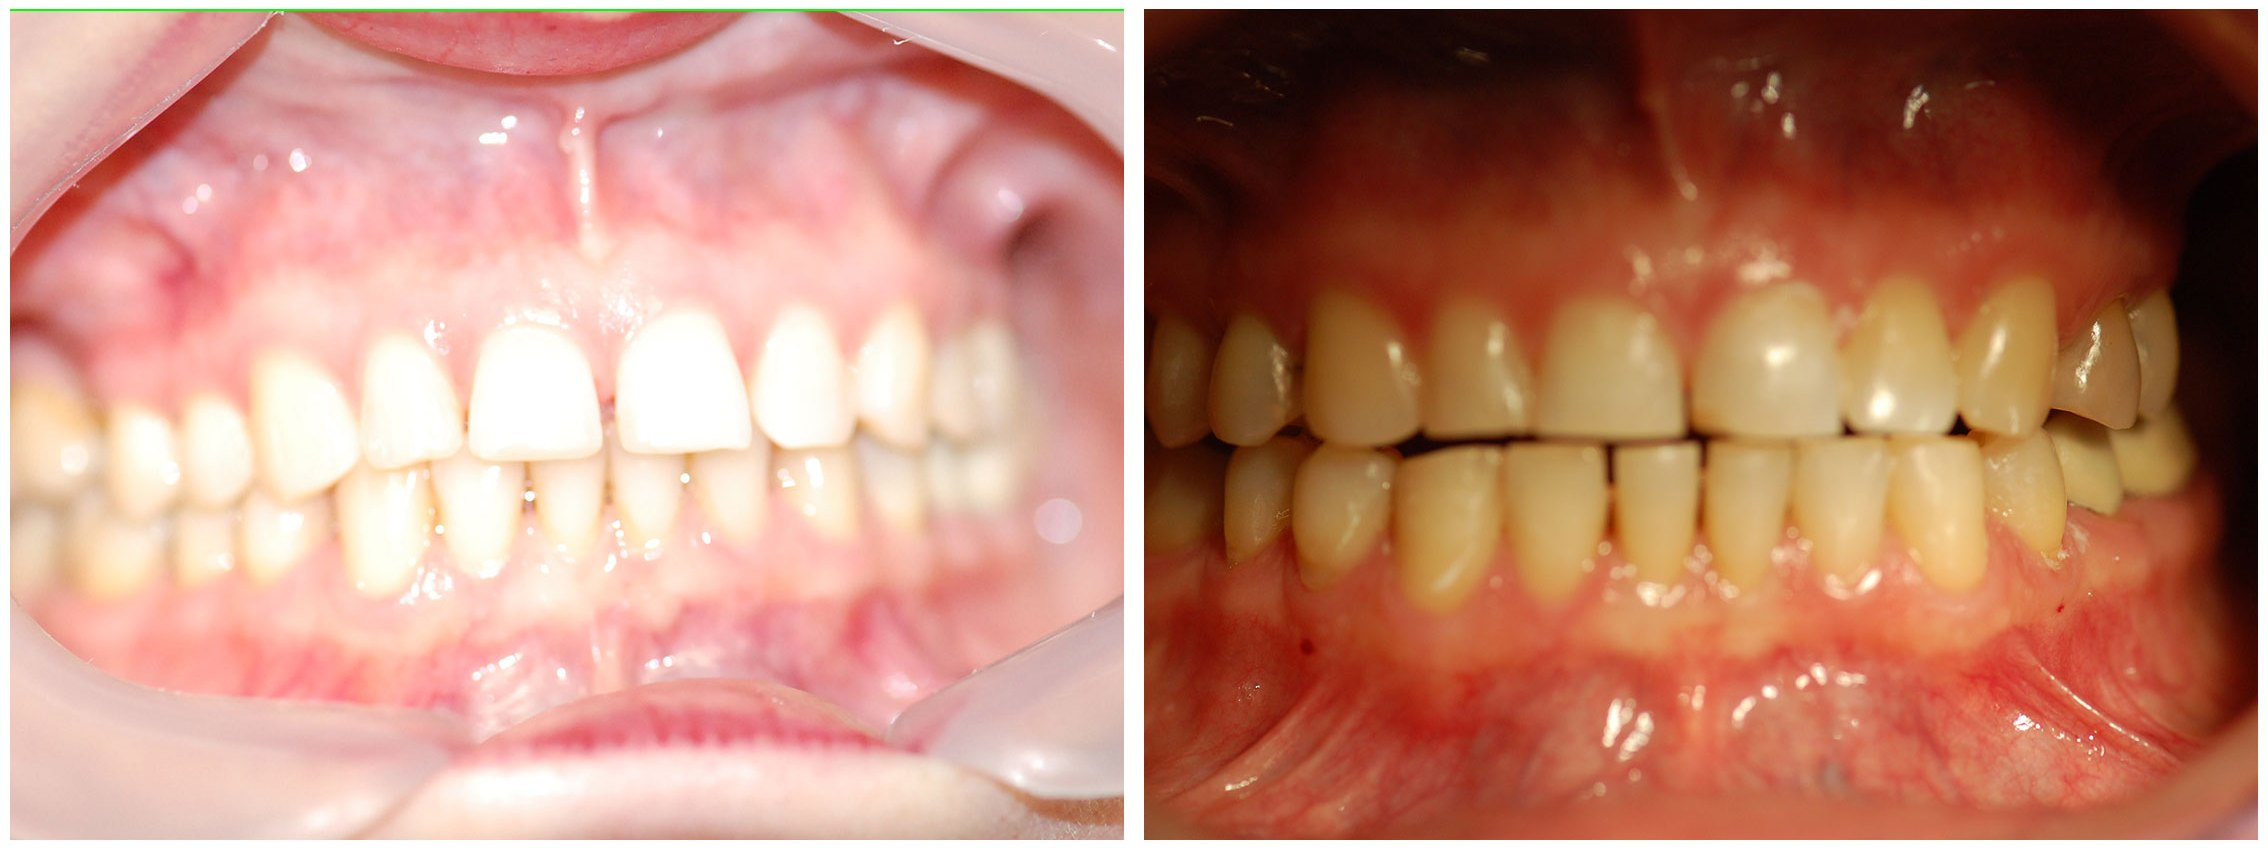 Pedodontic Dental Braces Before & After